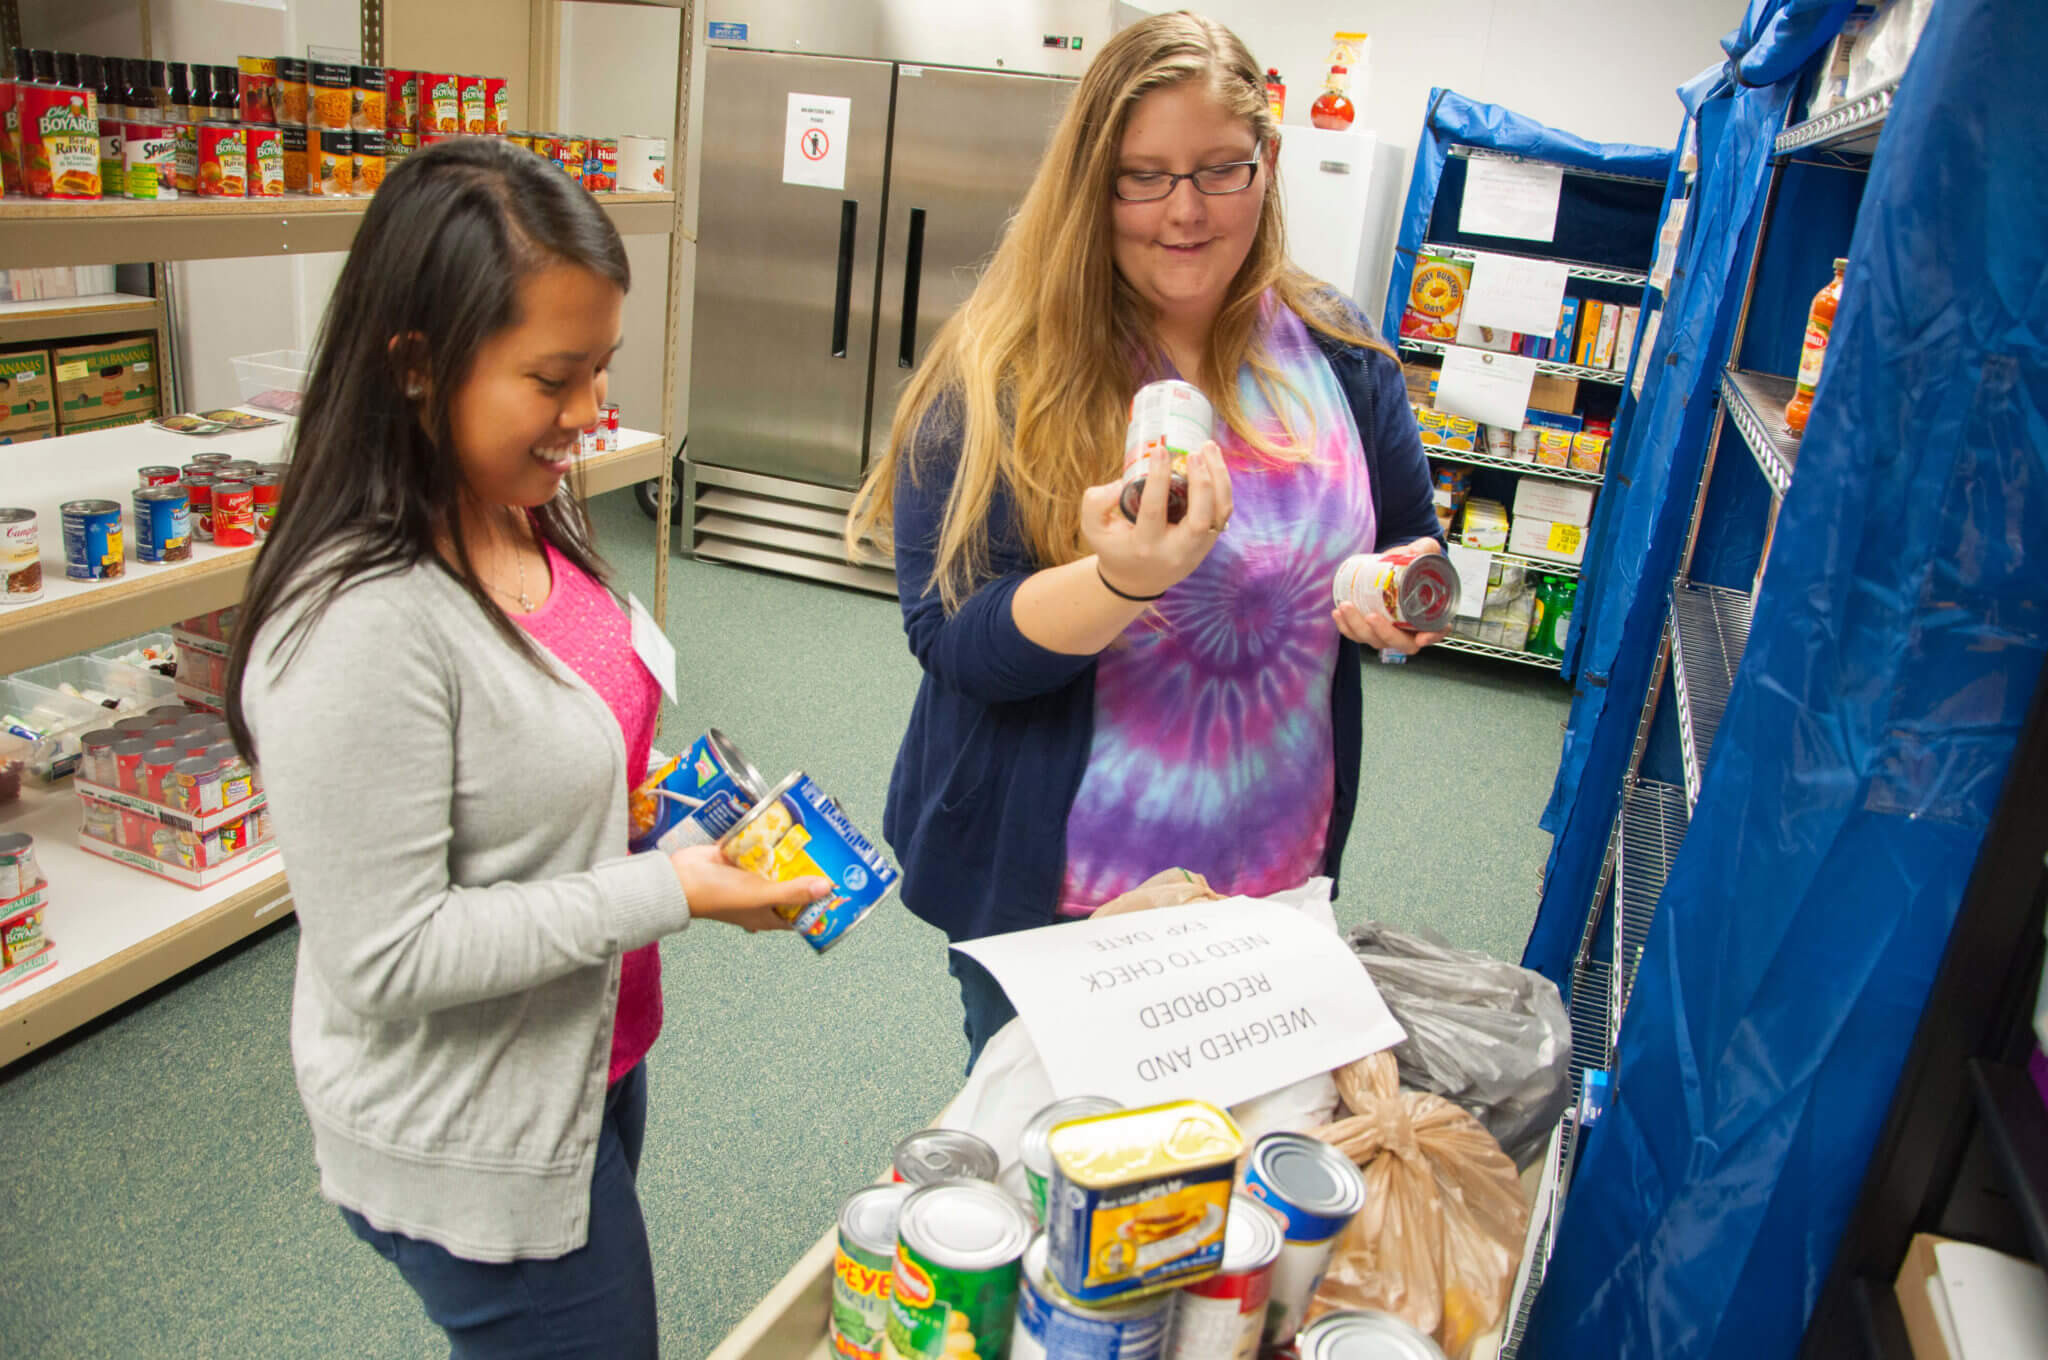 Best ideas about Uf Food Pantry . Save or Pin Feeding those in need Students volunteer at the Campus Now.